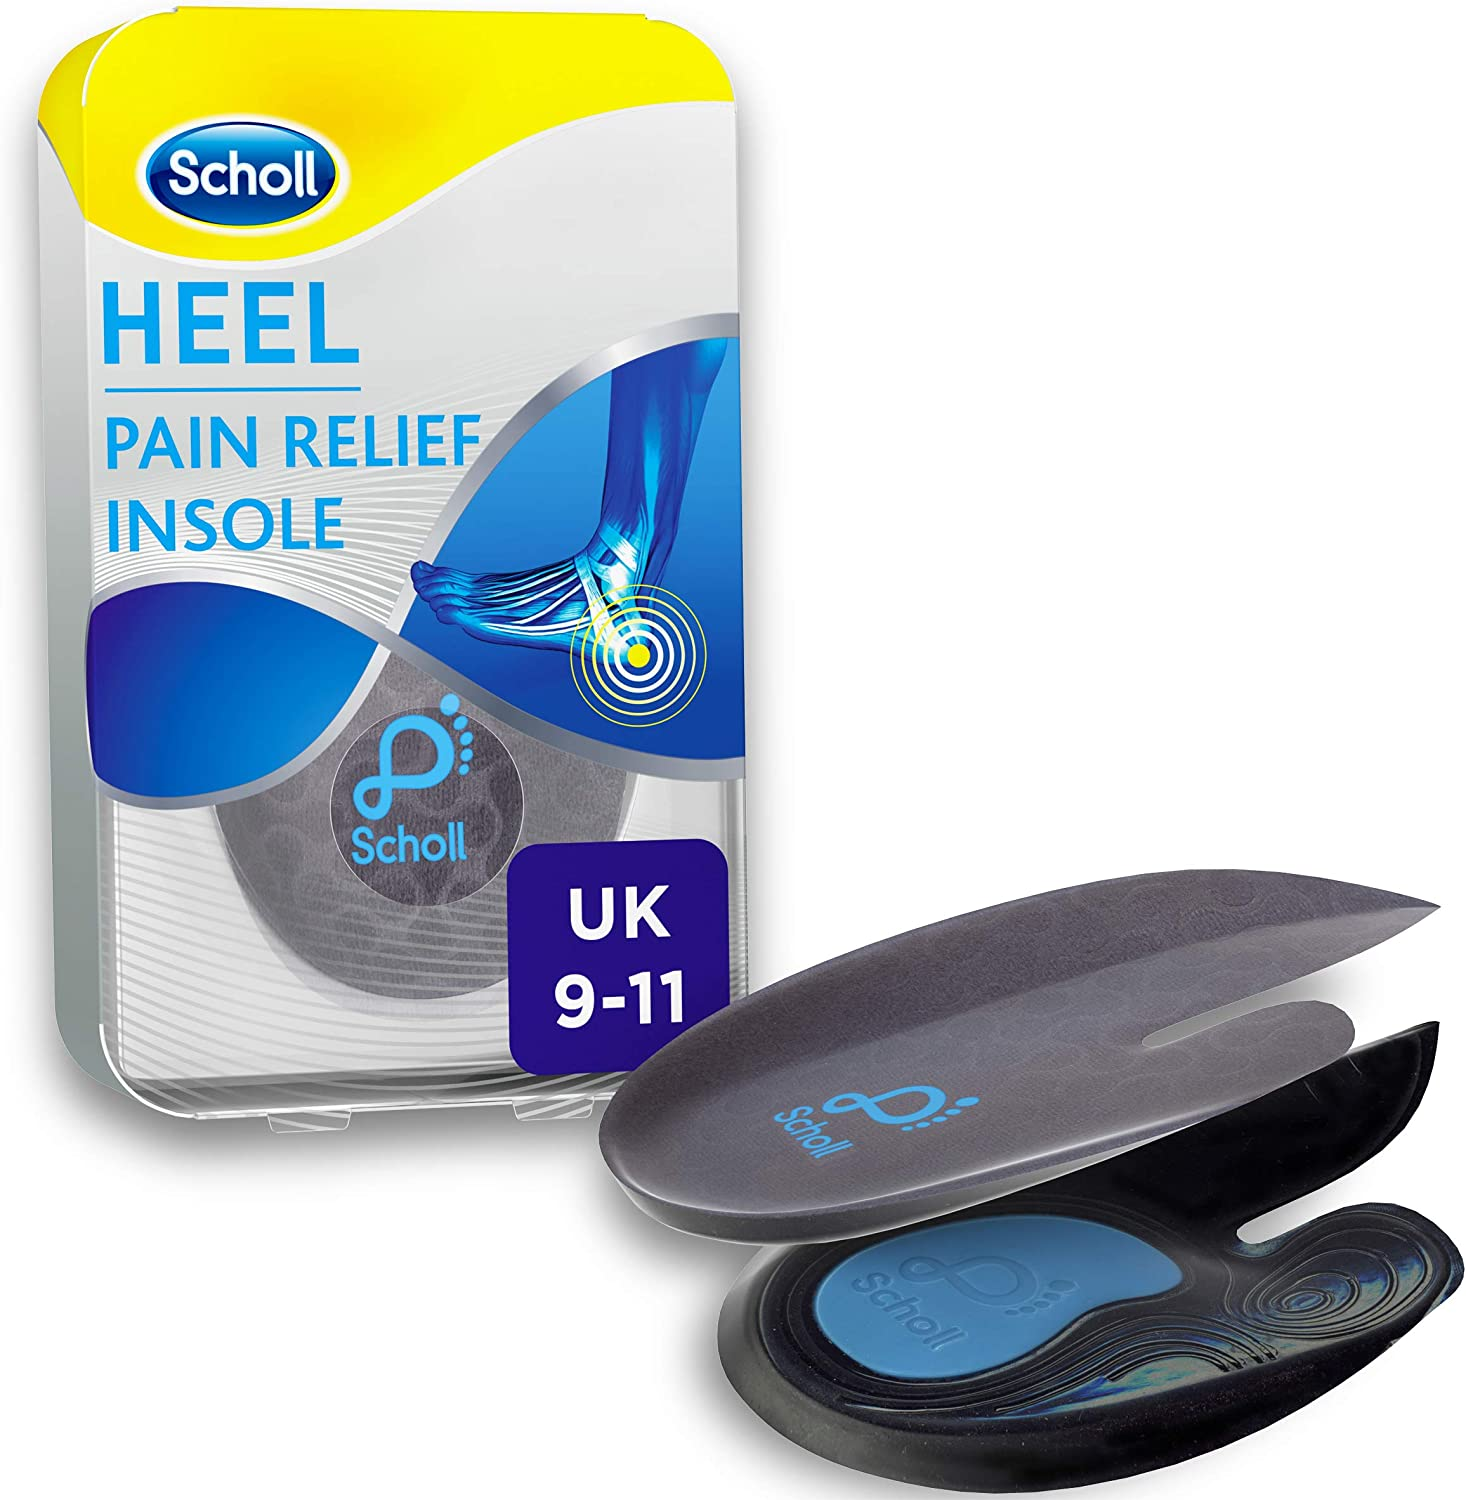 Shipping included Scholl Orthotic specialty shop Insole Heel and 9-11 UK Large Size Ankle